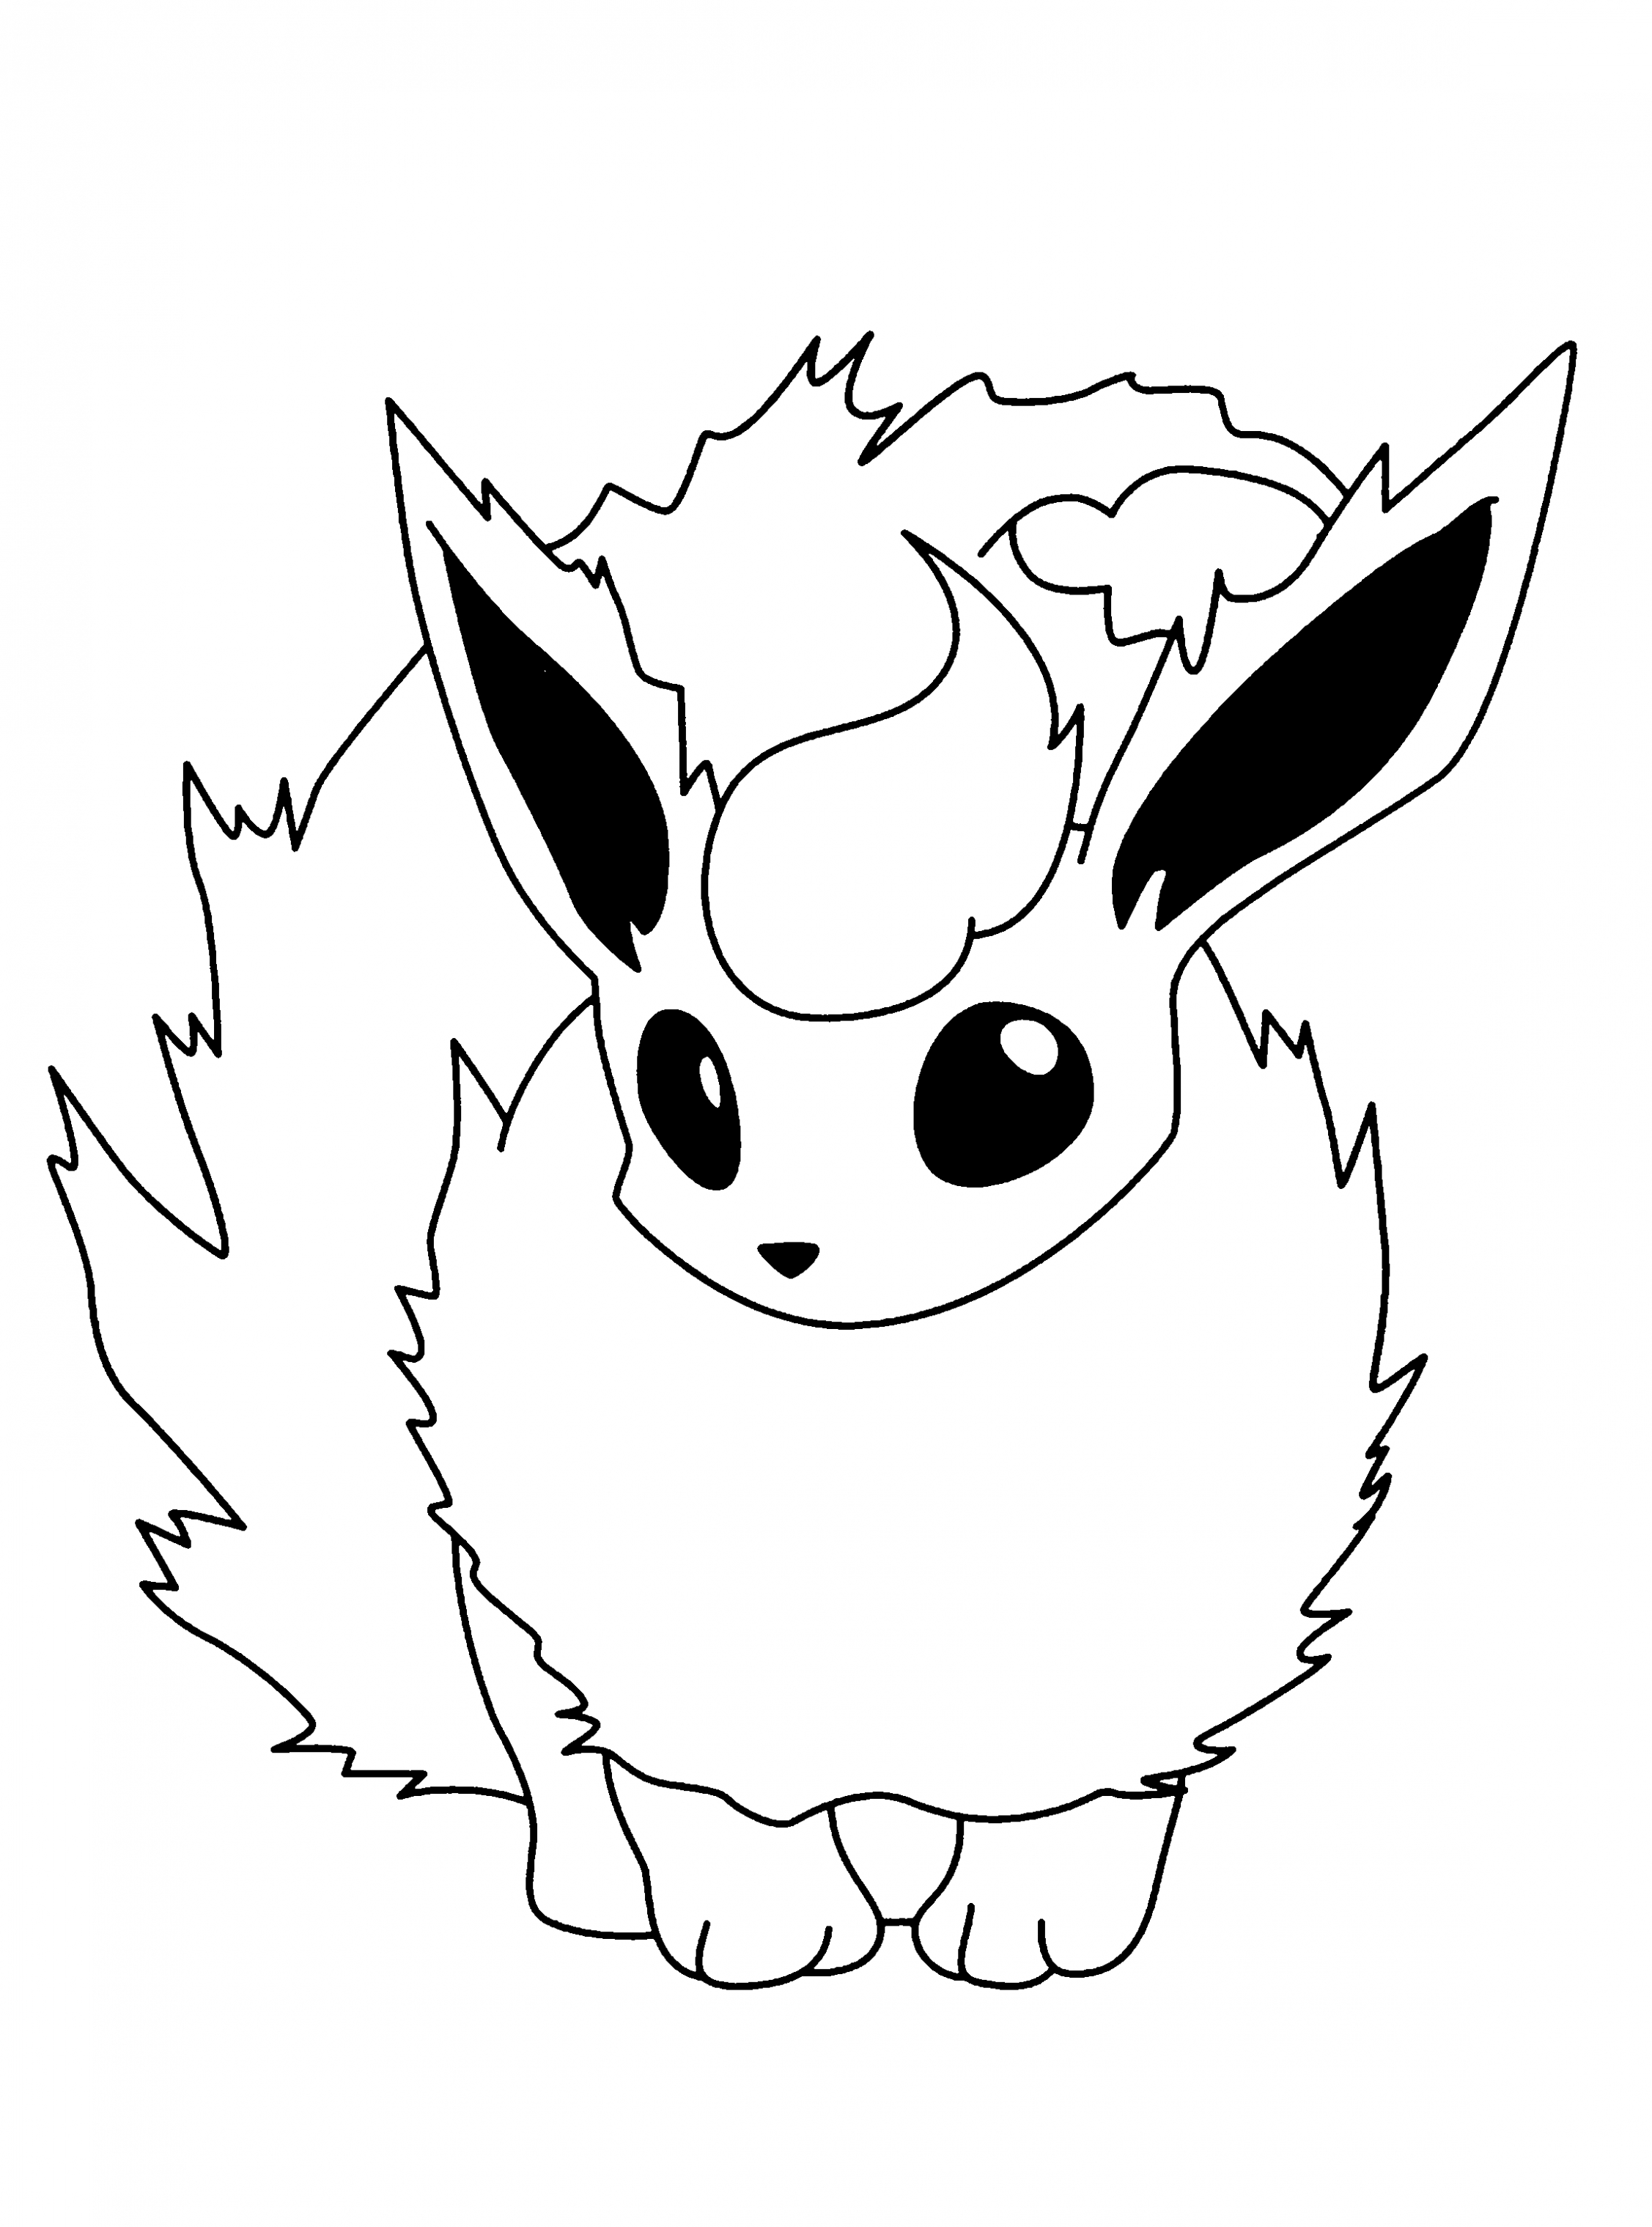 vaporeon pokemon coloring pages vaporeon coloring page 3 by bellatrixie white on deviantart coloring vaporeon pages pokemon